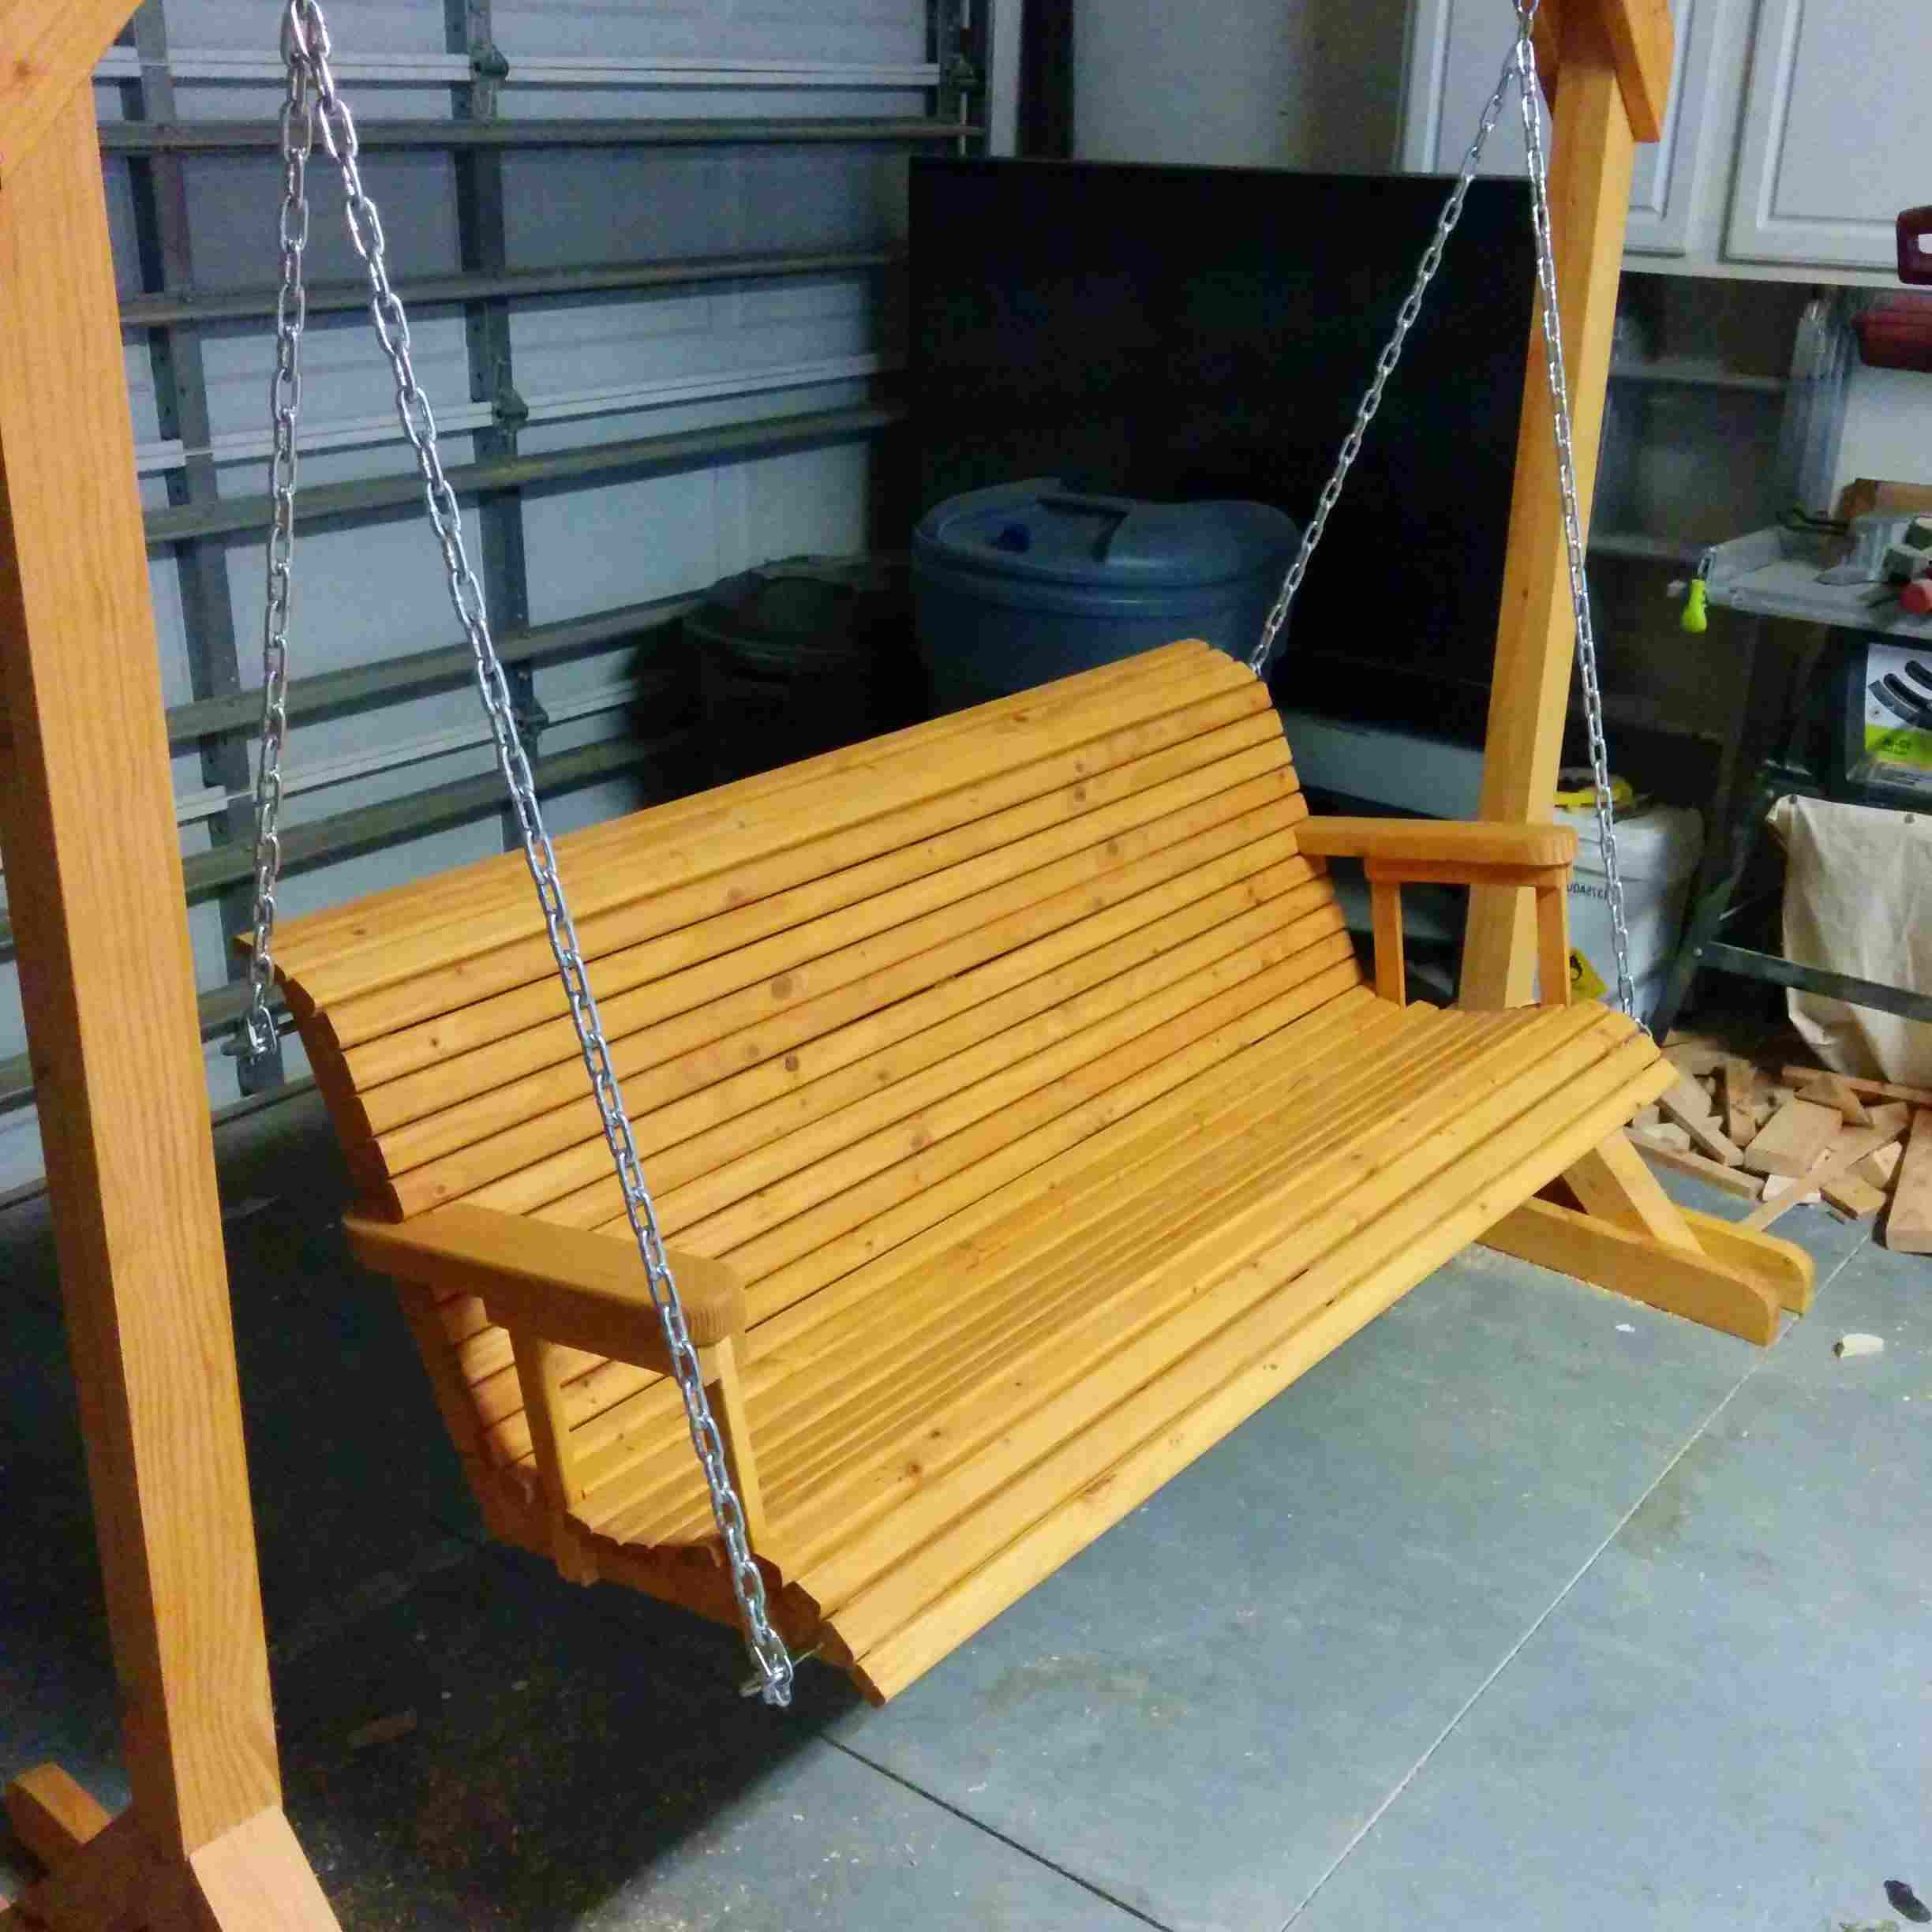 12 Free Porch Swing Plans To Build At Home For Fashionable Patio Porch Swings With Stand (Gallery 27 of 30)